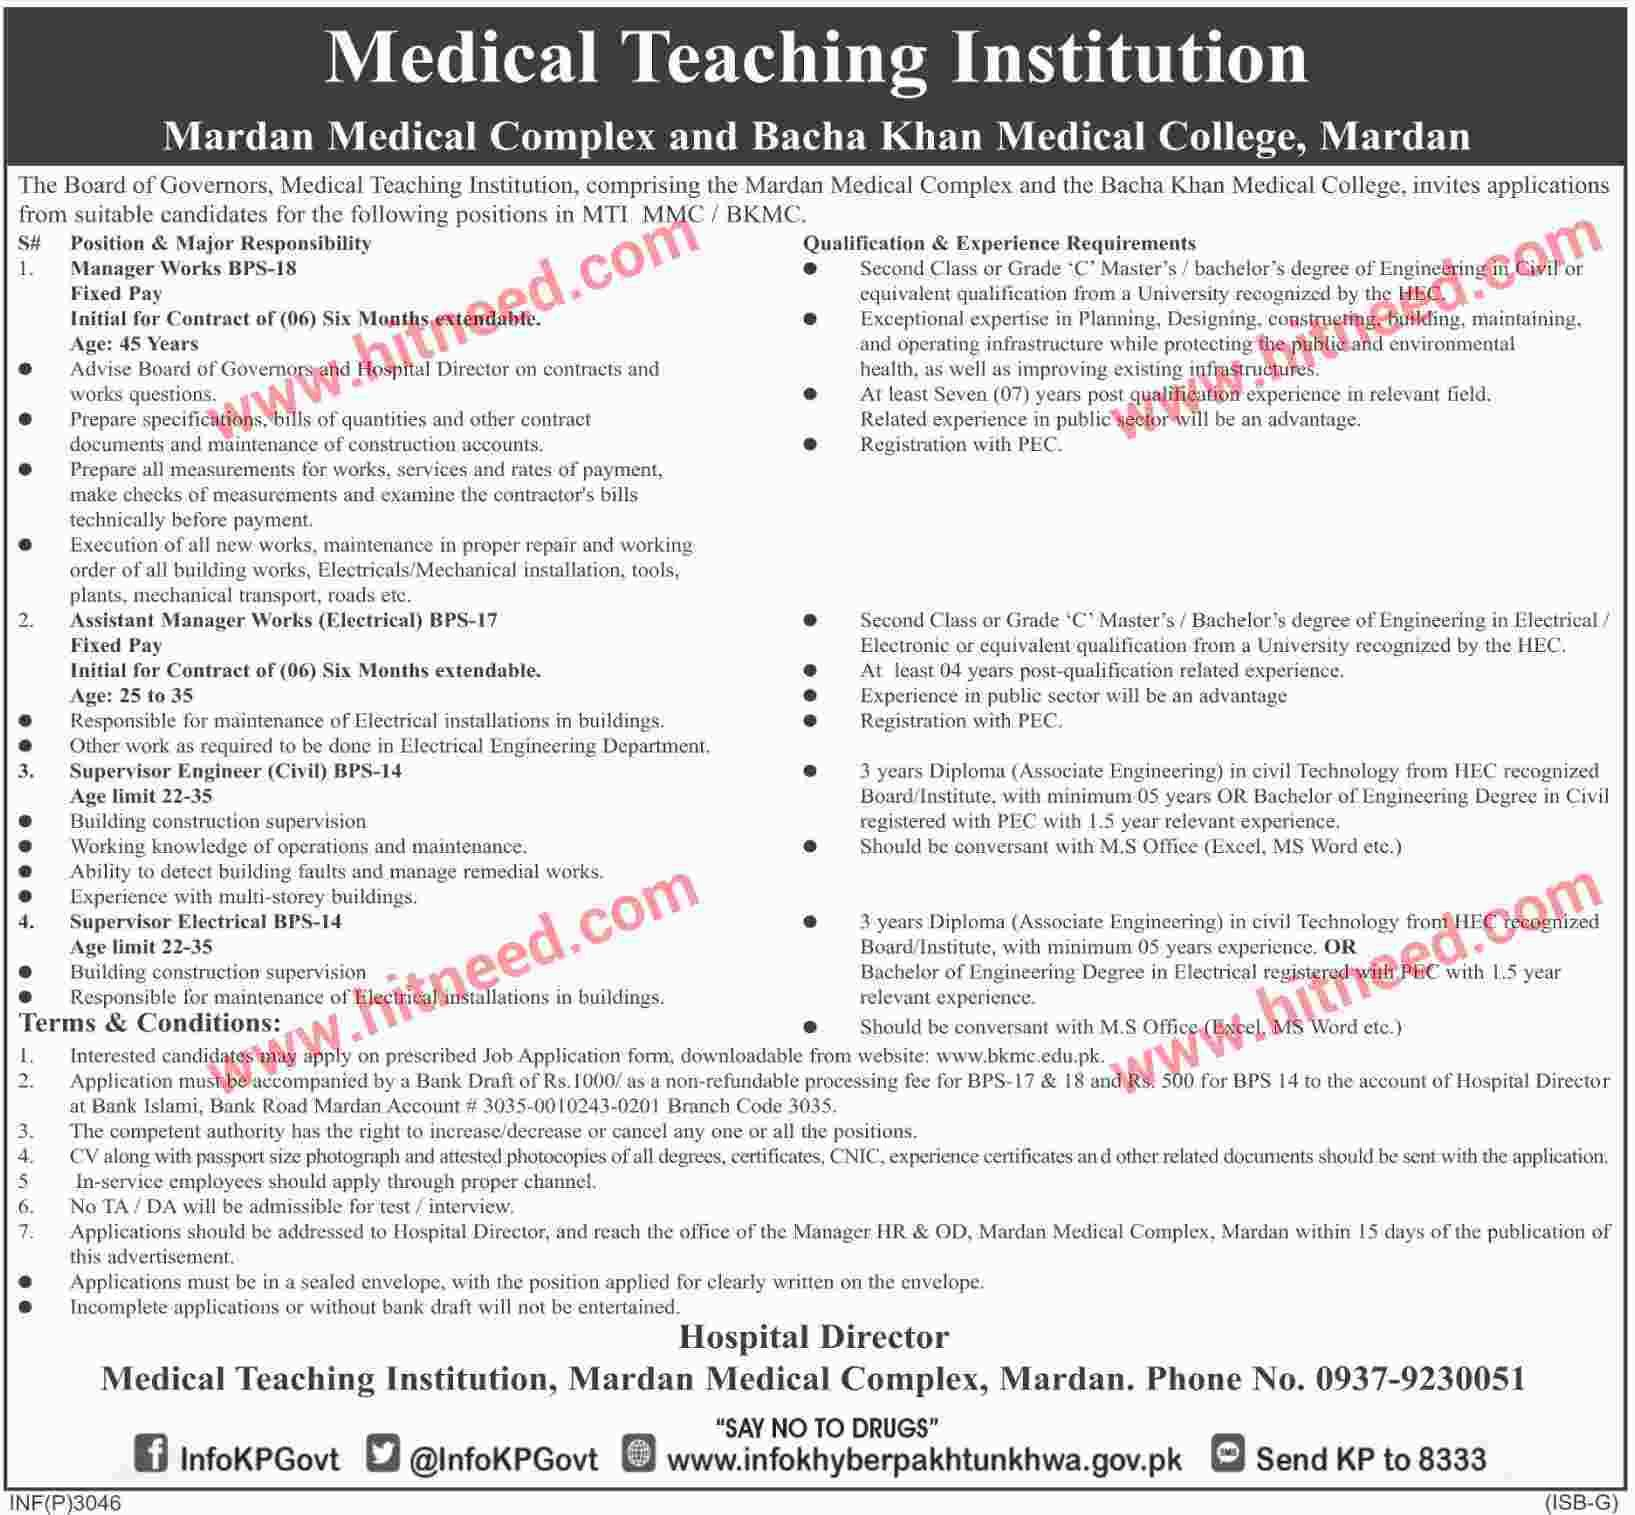 Medical Teaching Institution Mardan Medical Complex And